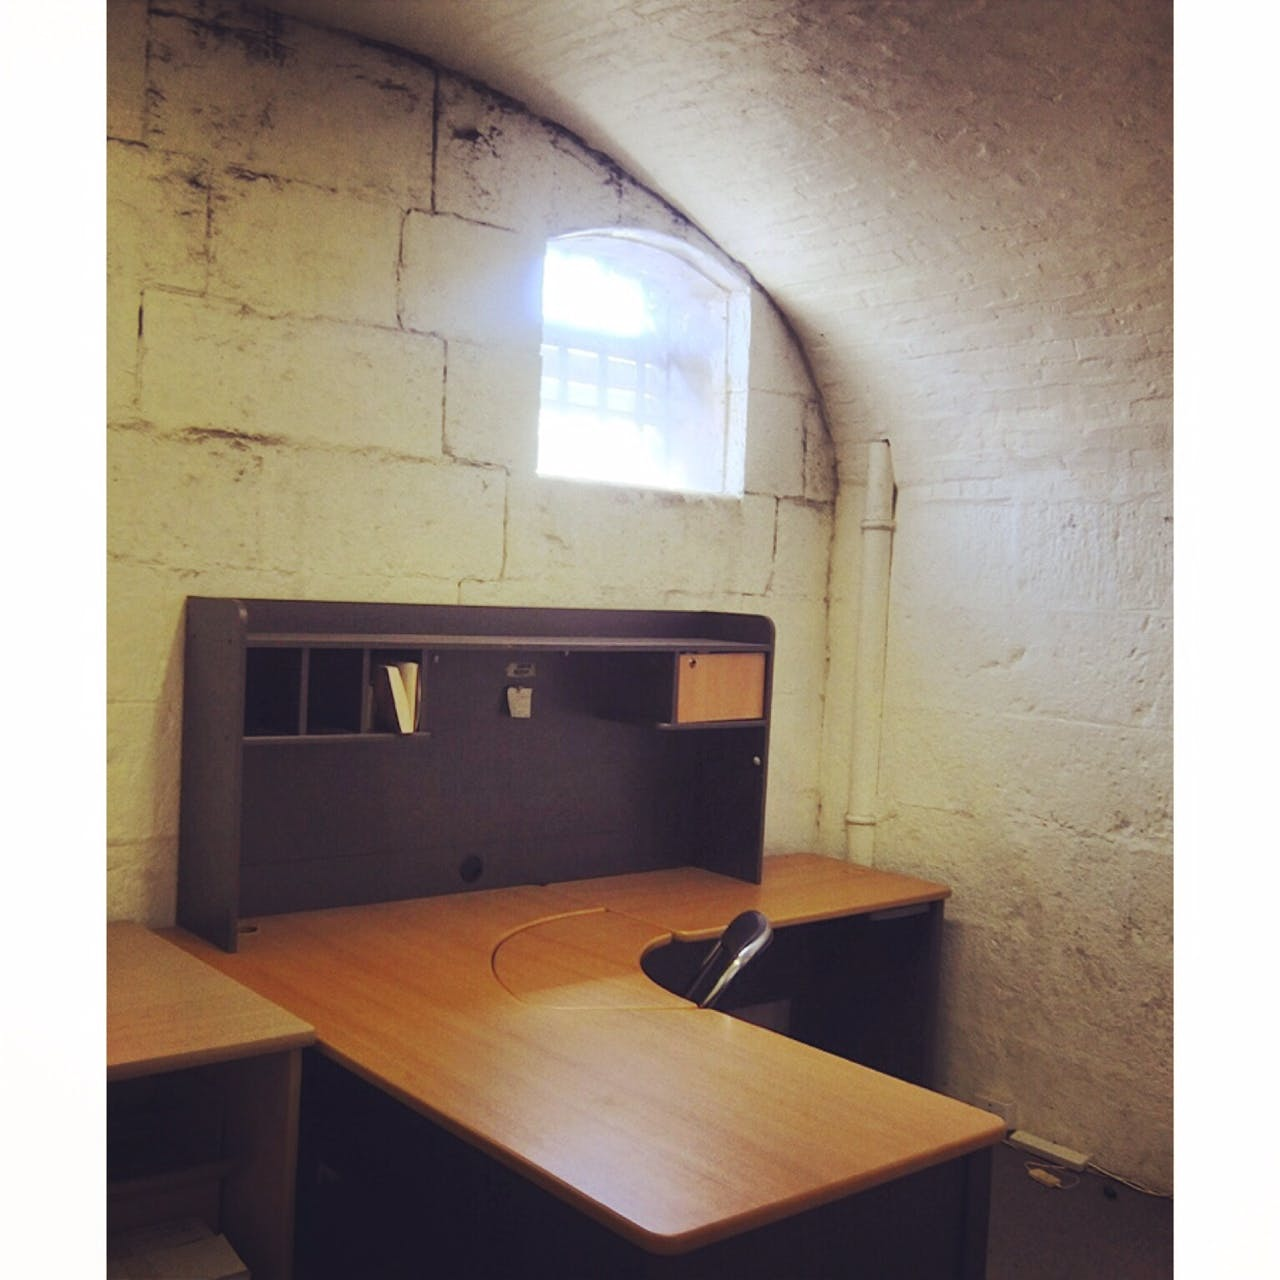 Seeking inspiration? Cells for writers at the Old Melbourne Gaol, image 1